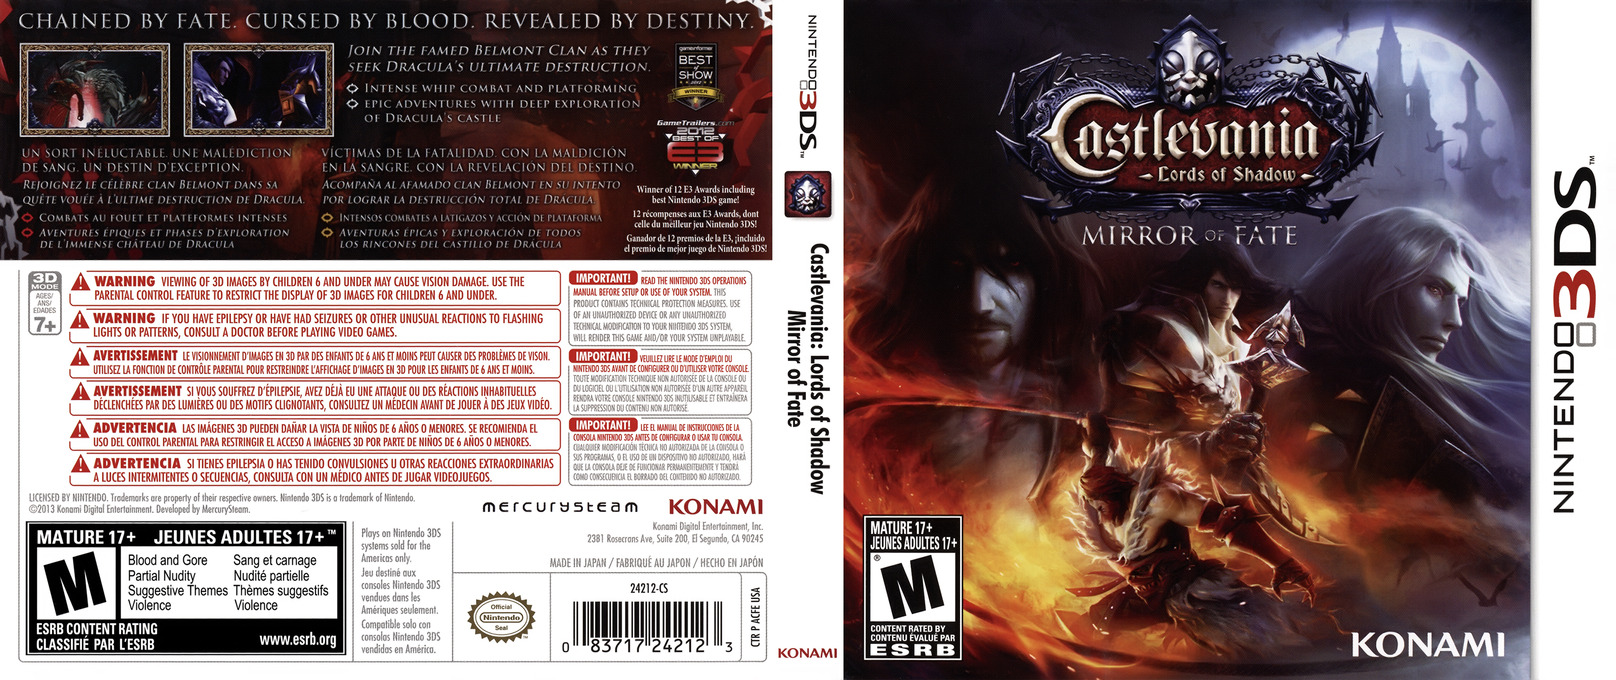 Acfe Castlevania Lords Of Shadow Mirror Of Fate